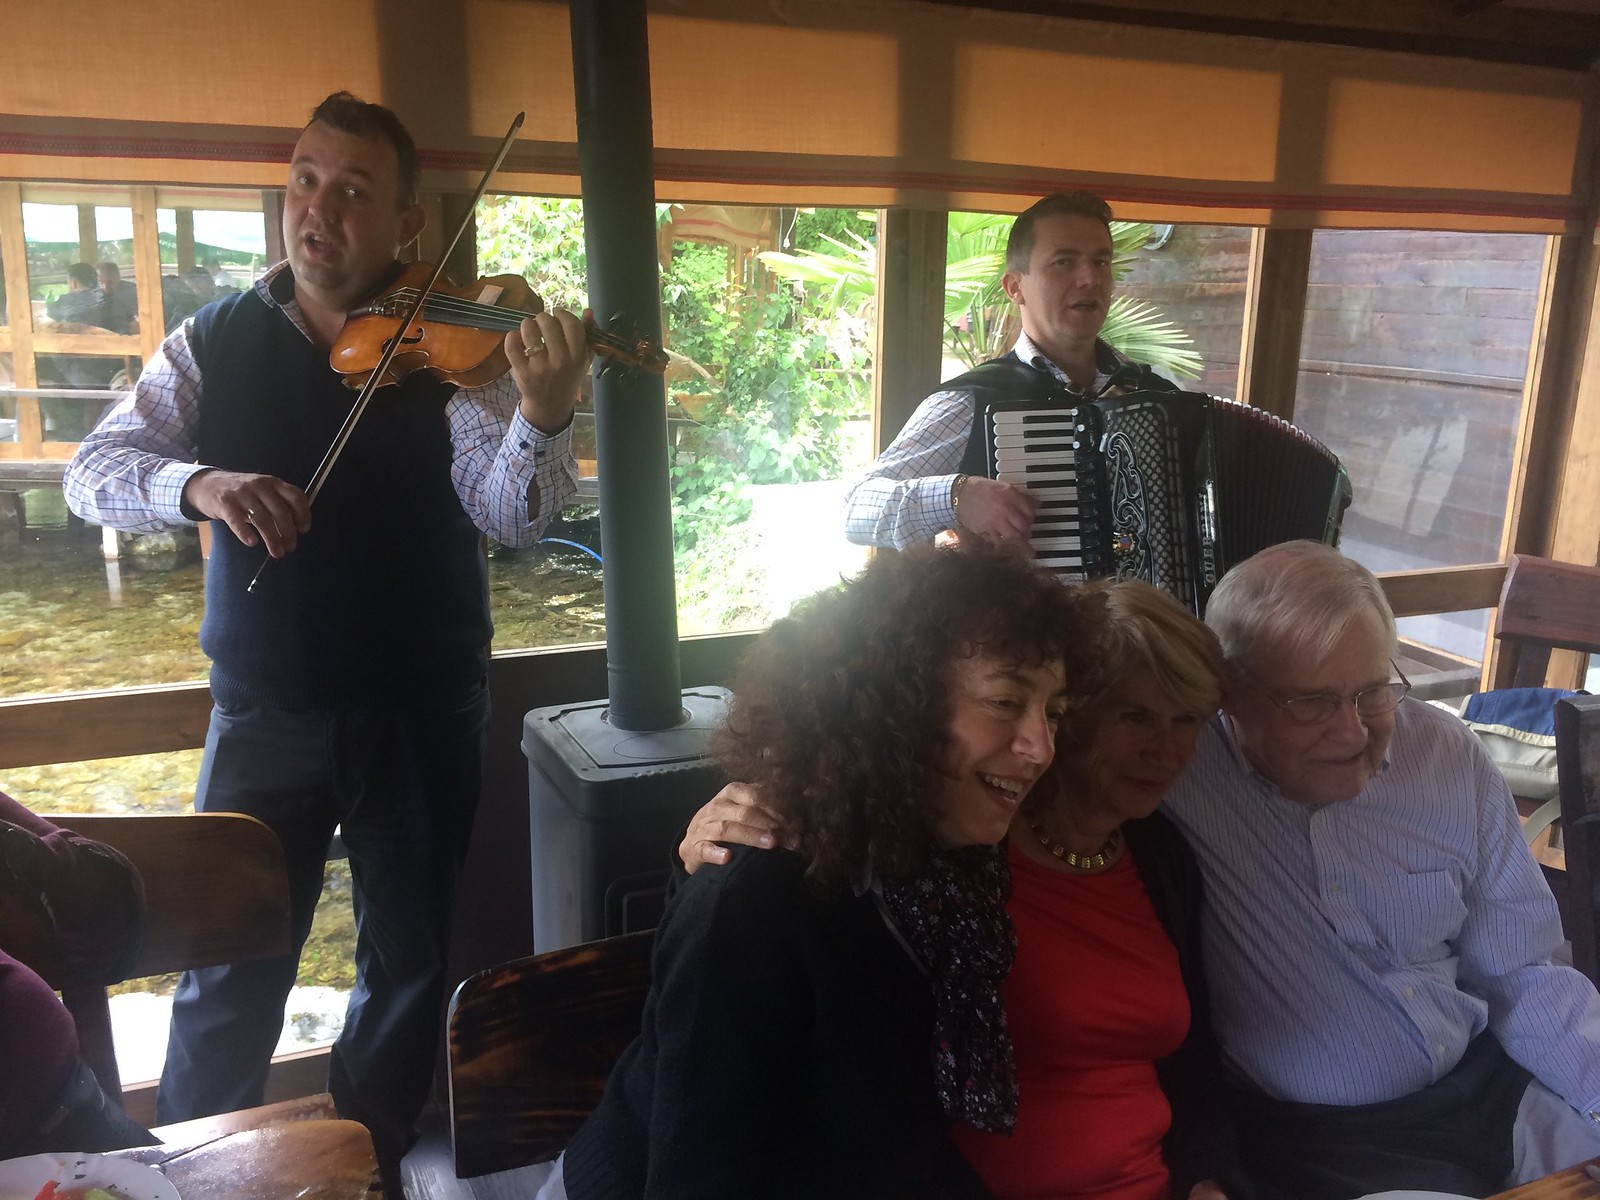 201705 - Balkans - Macedonian Folk Songs at Lunch, Zdenka, Maria and Don - 75 of 101 - Nacionalen Park Galicica - Ohrid, Ohrid, May 28, 2017